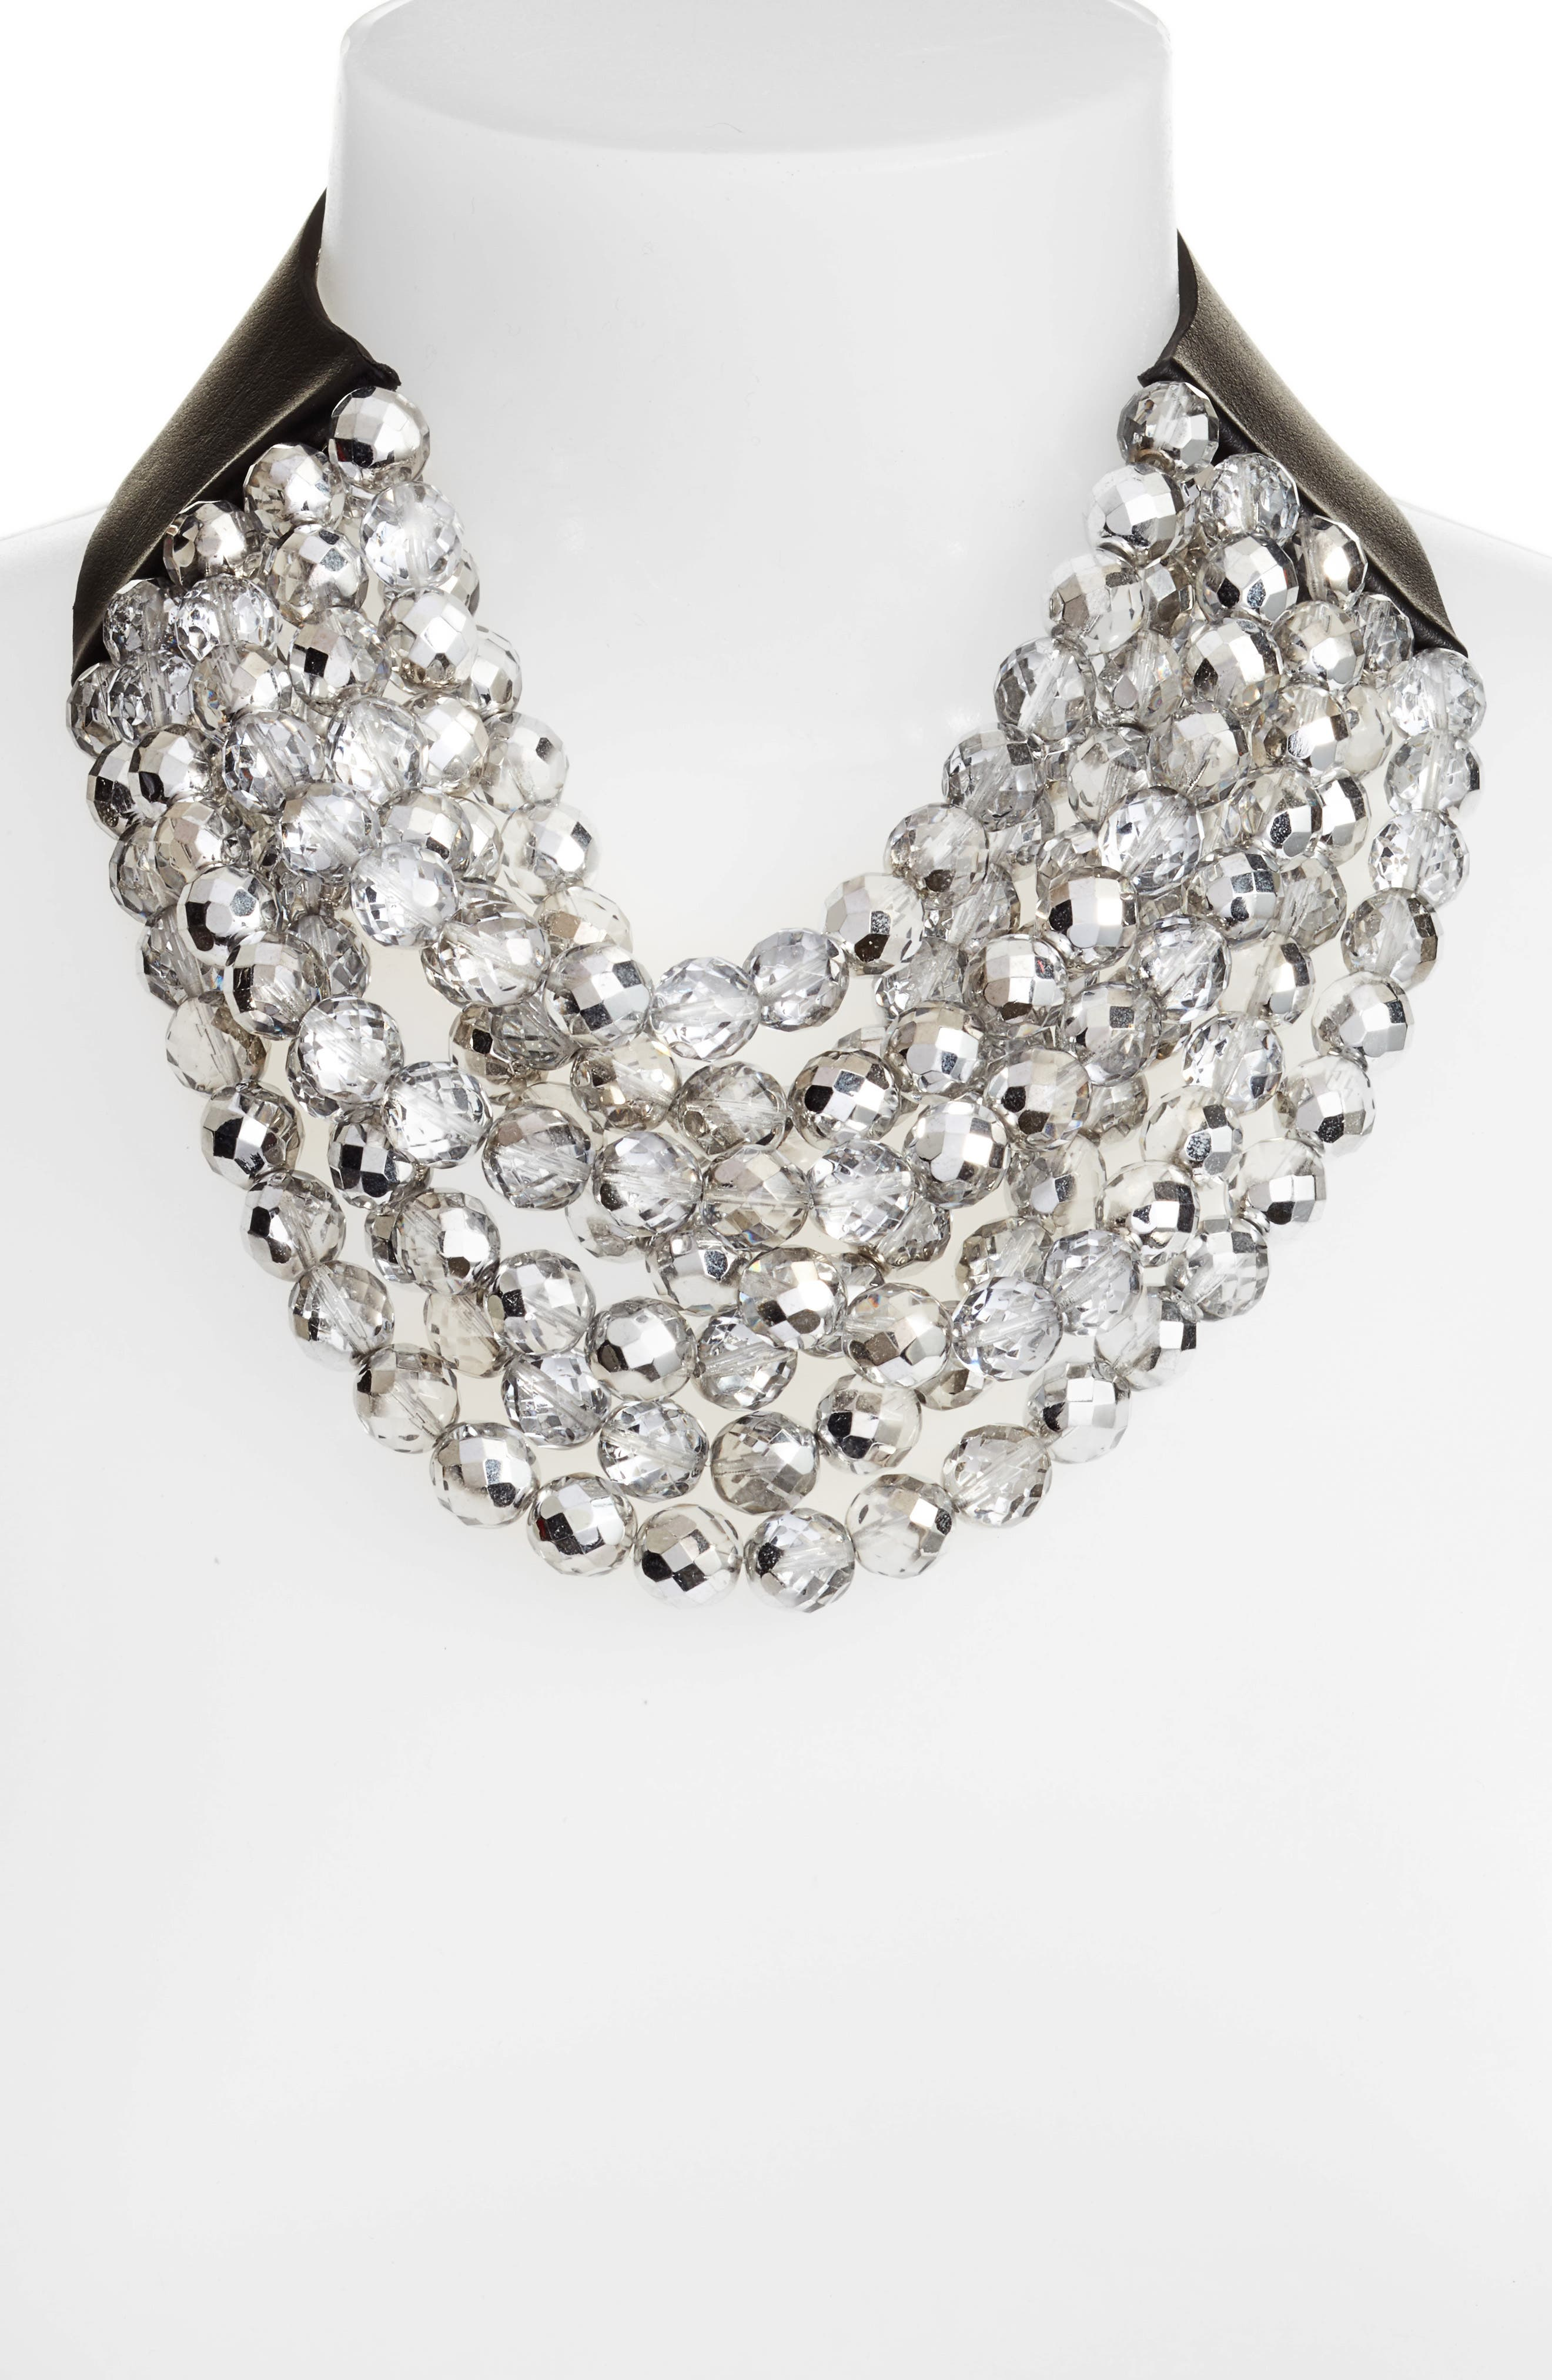 Bella Beaded Collar Necklace,                             Alternate thumbnail 2, color,                             HOLIDAY CRYSTAL SILVER